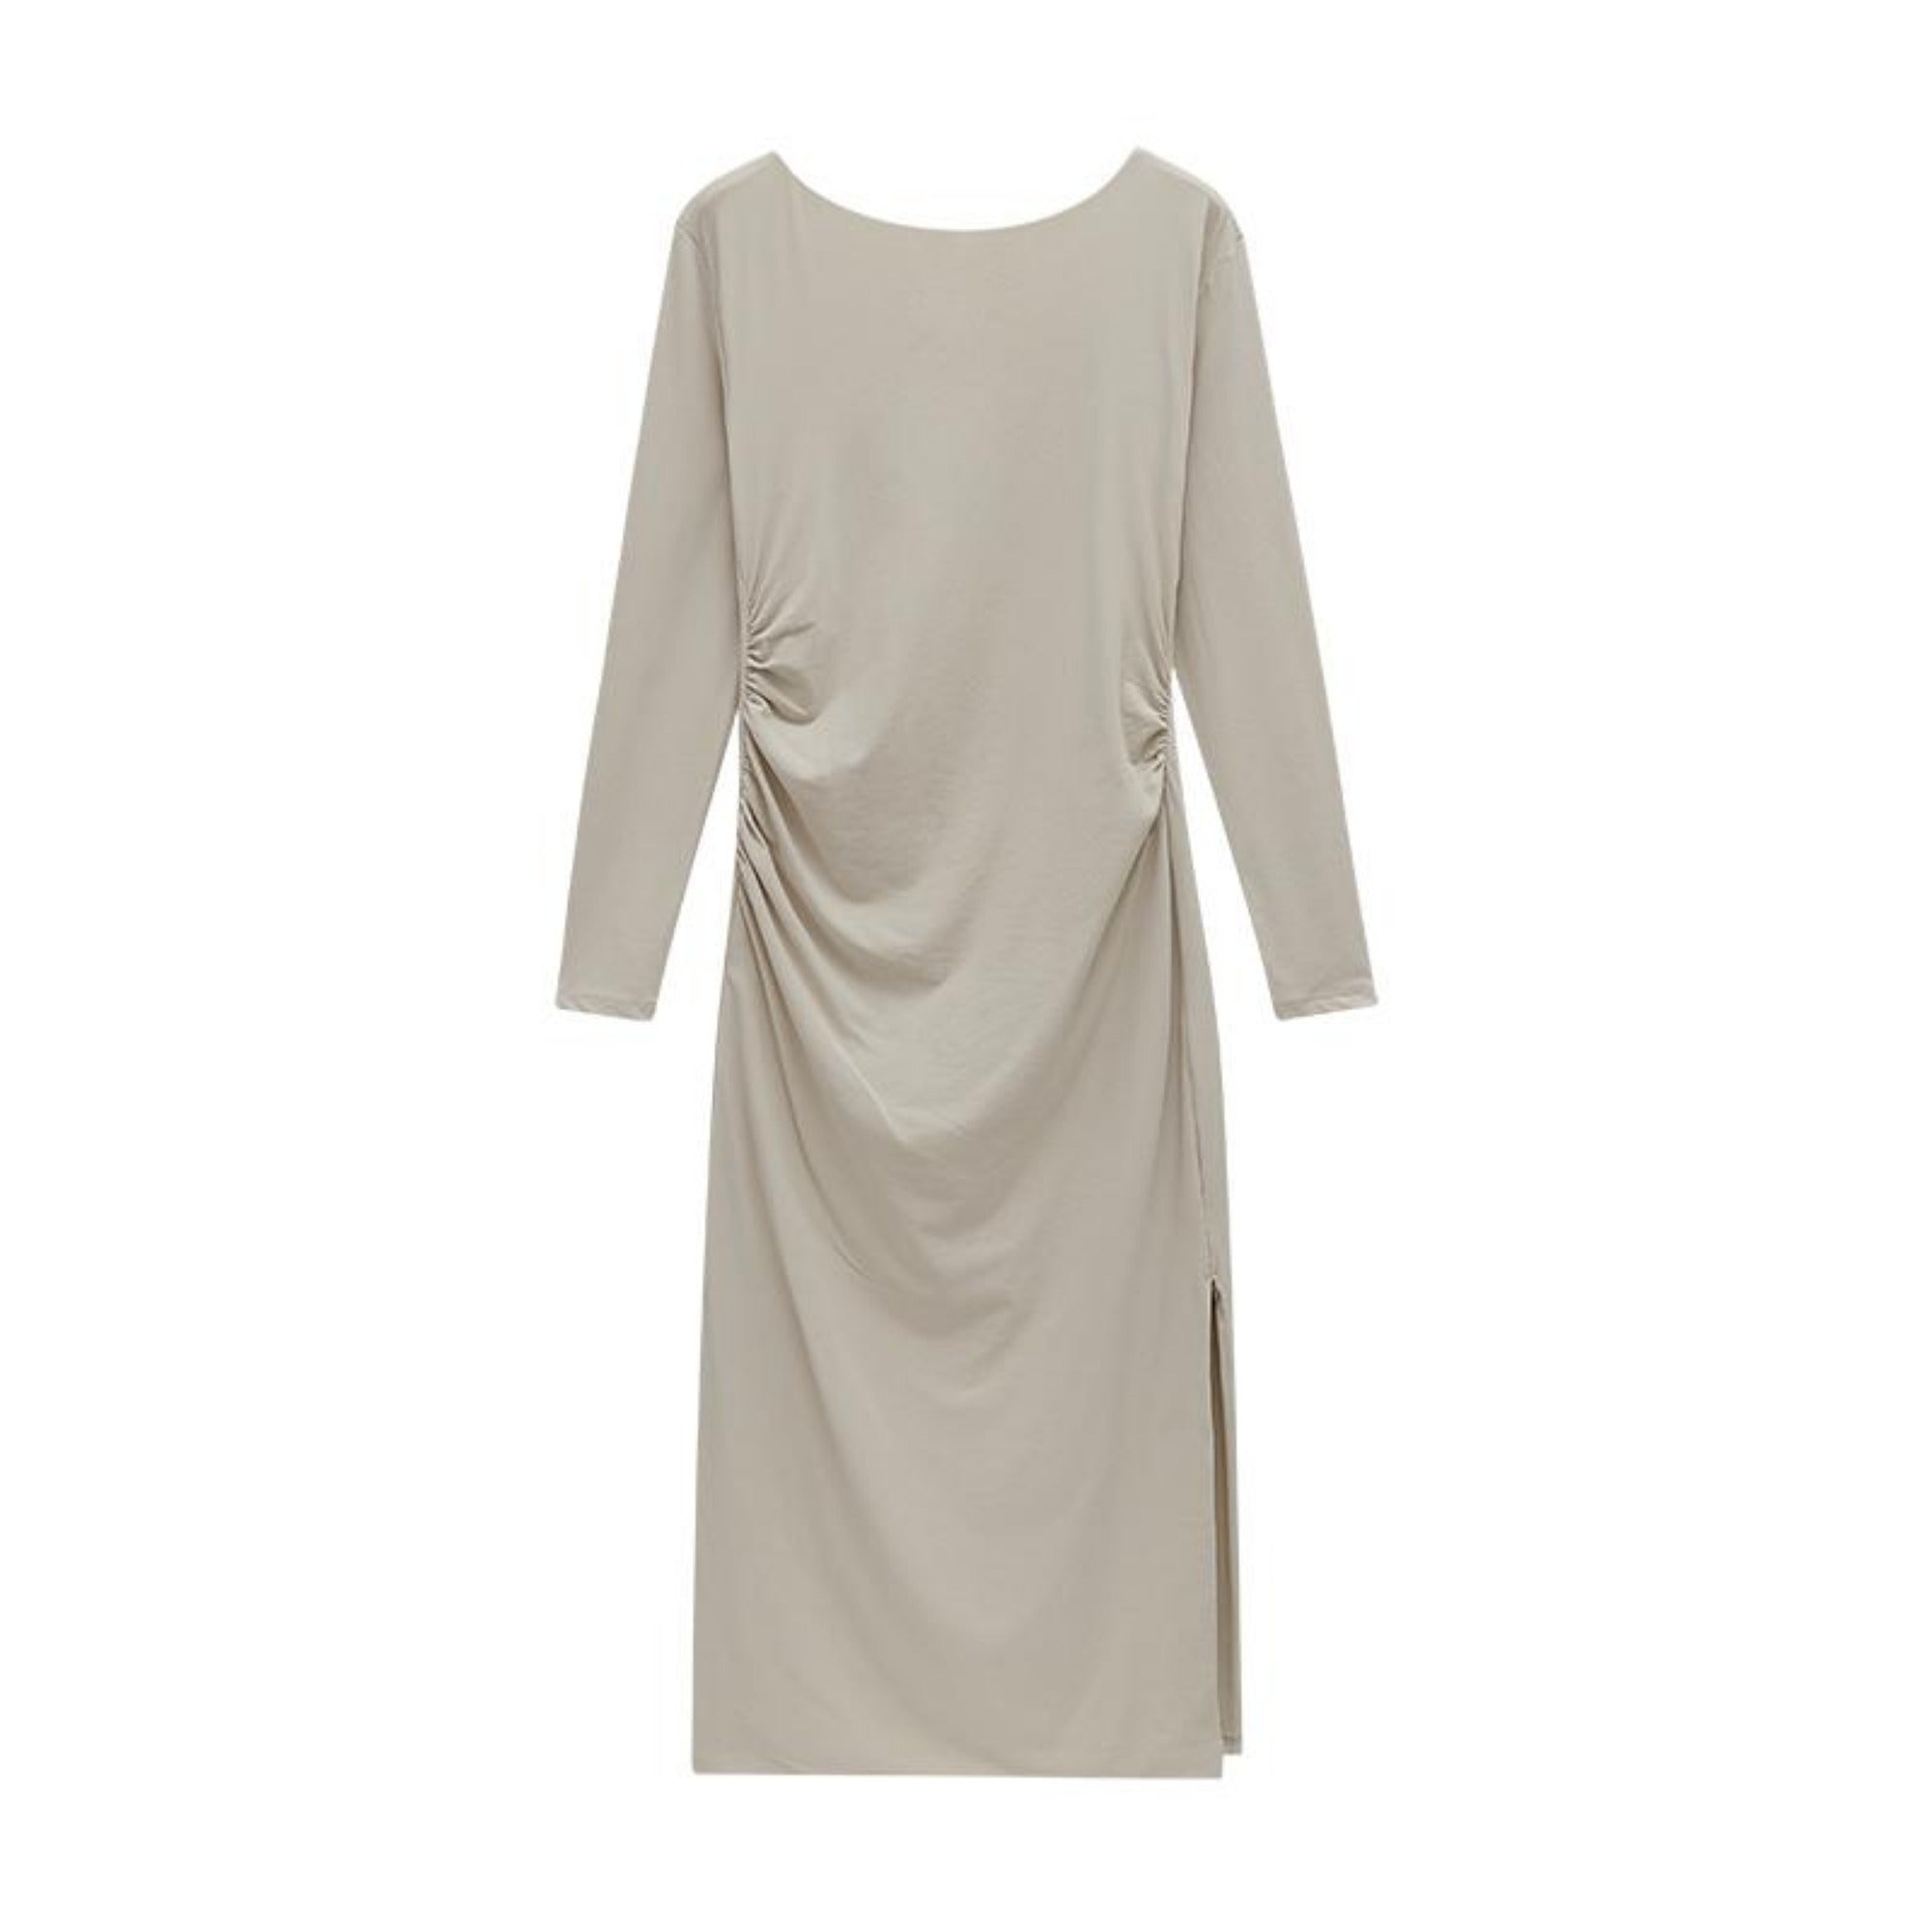 NEIWAI's Boundless Cotton Backless Dress in Cloud Gray.